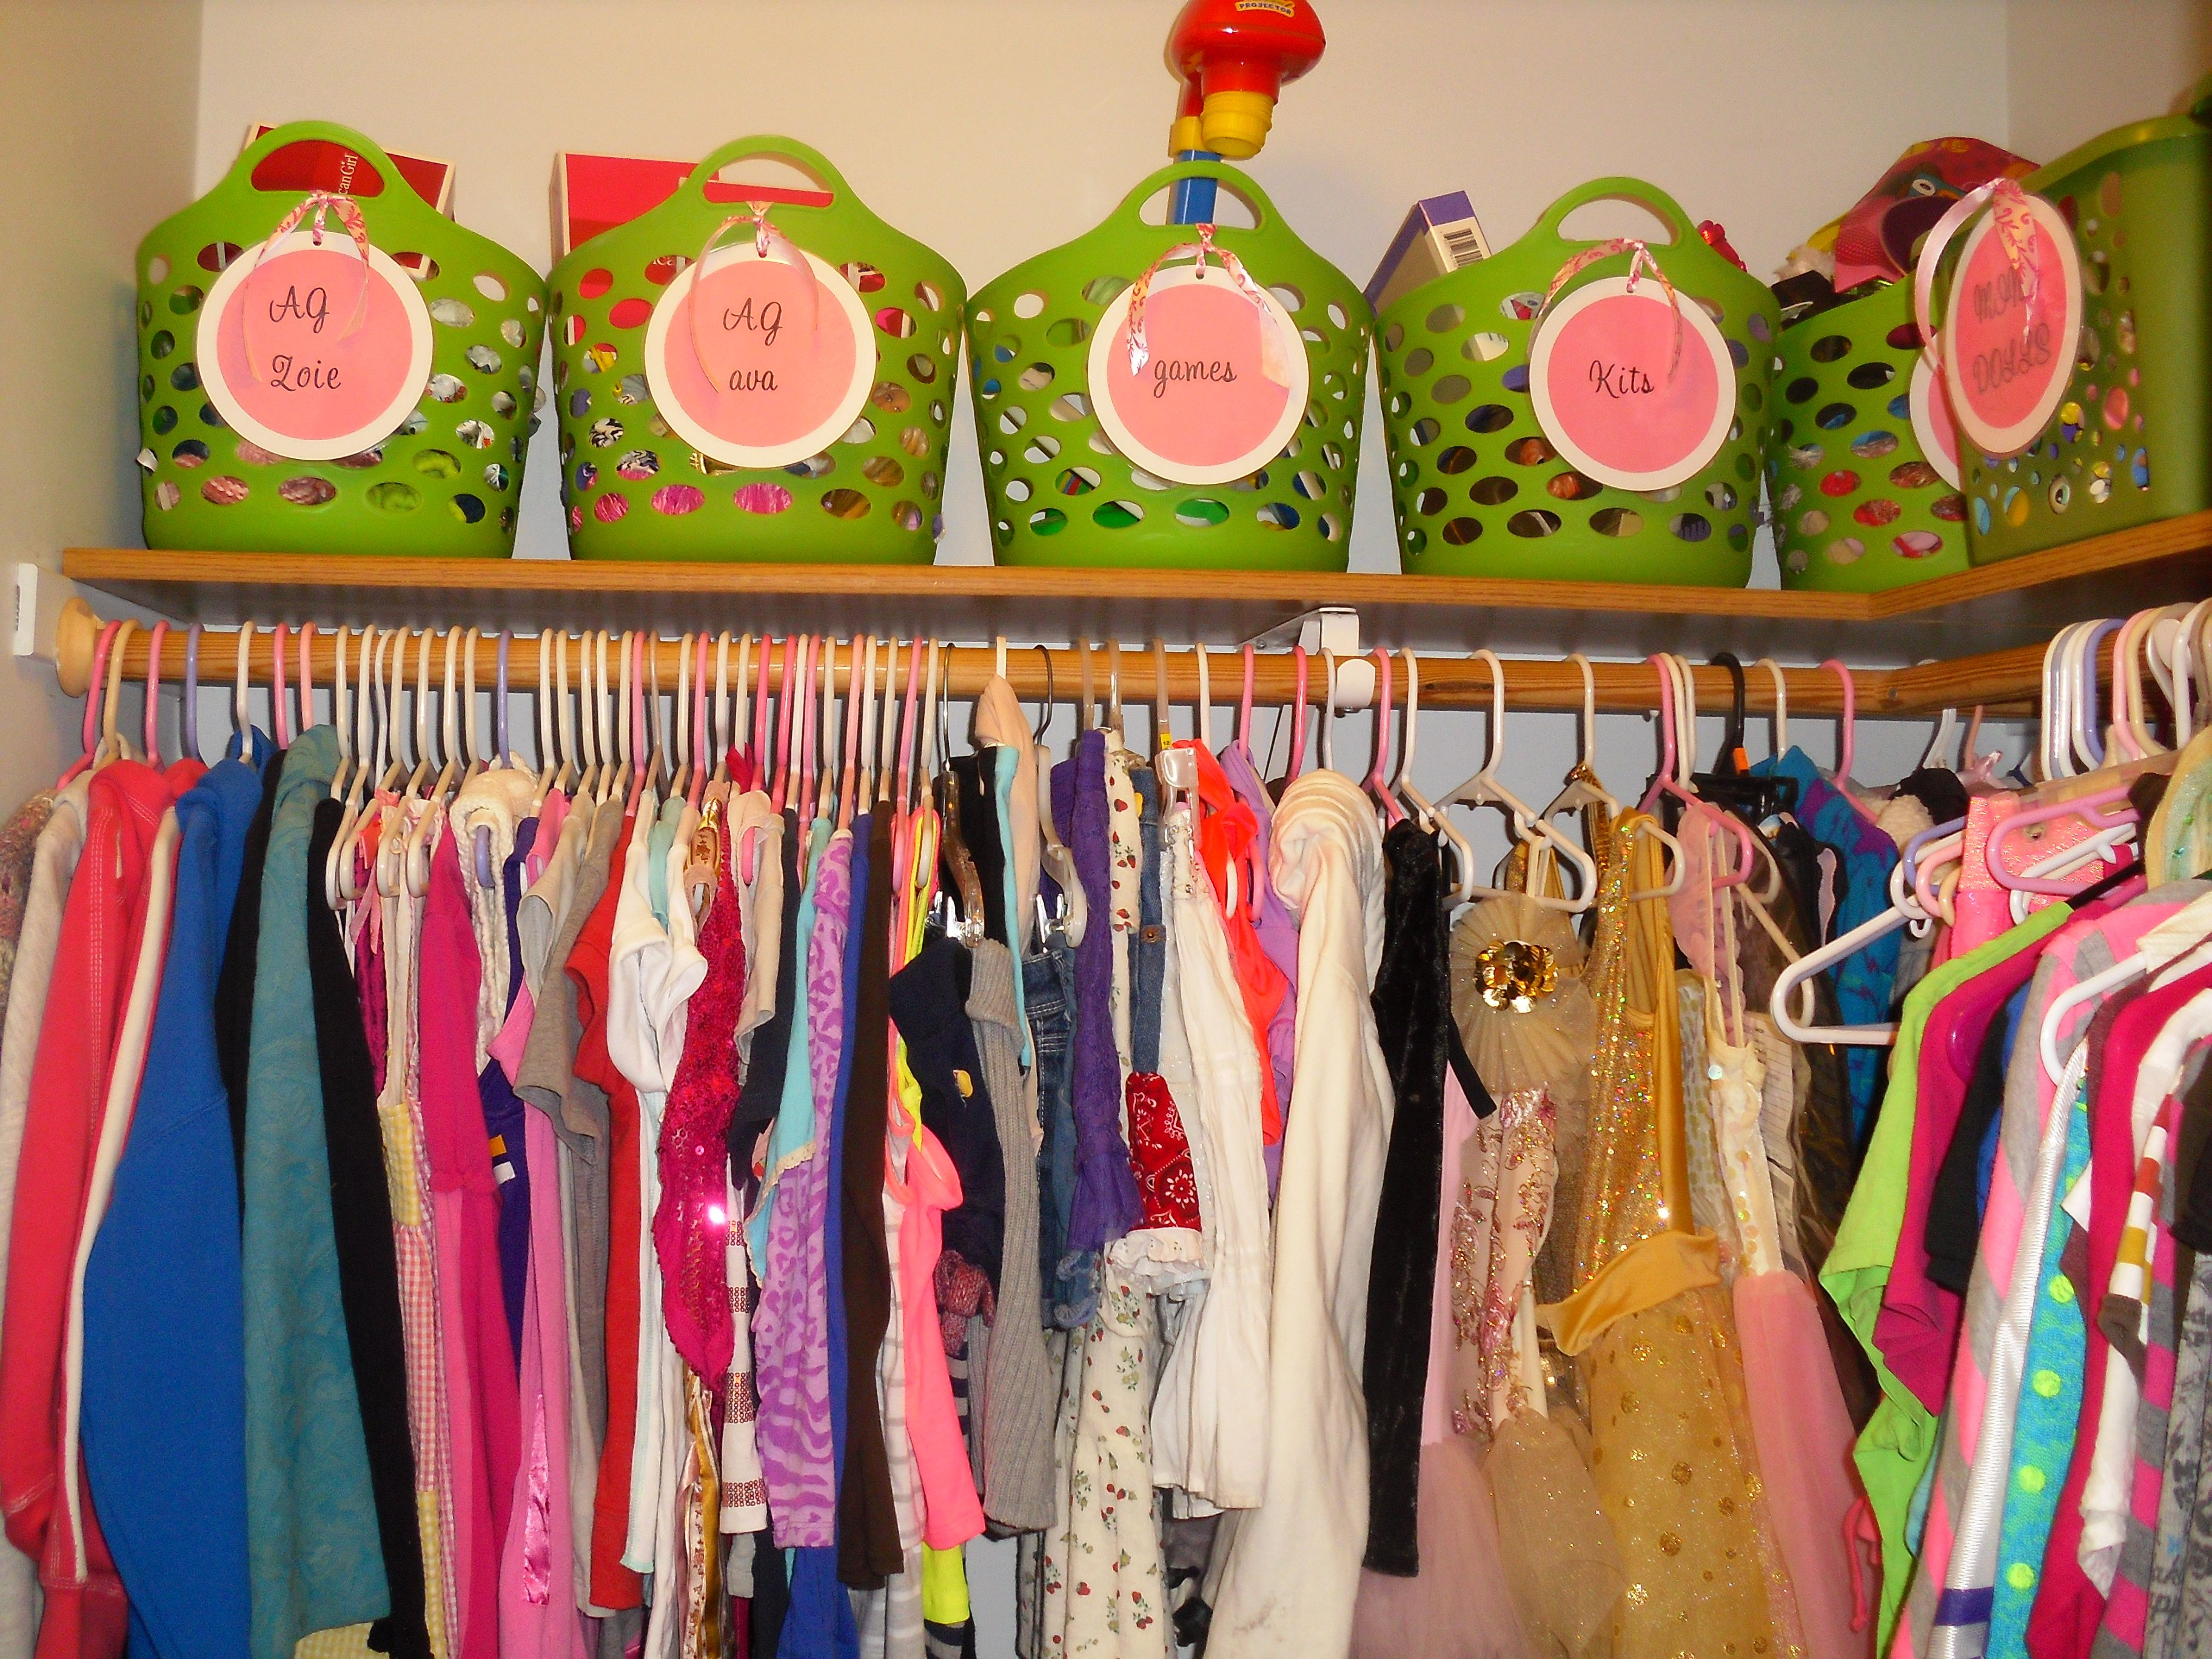 organize girls closet with baskets from dollar tree and make your own tags with cardstock